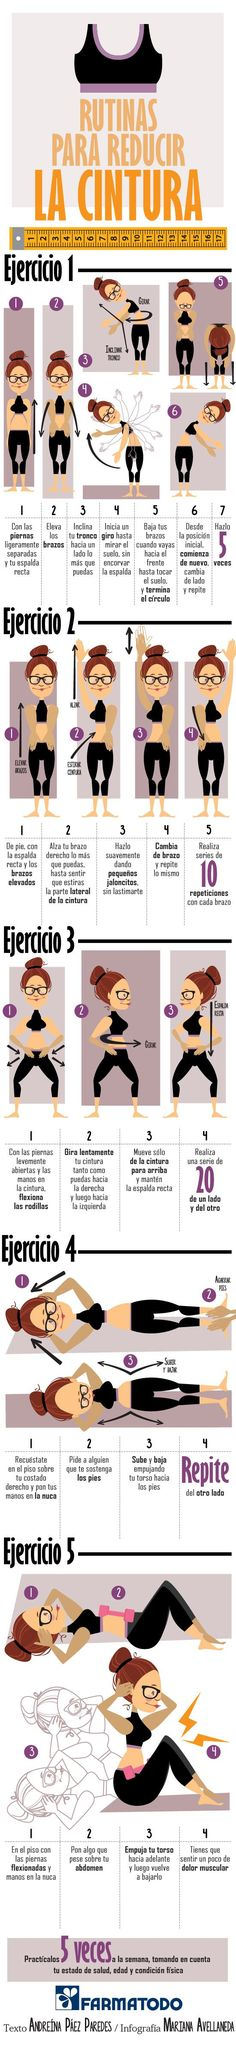 "Workouts Plans : Illustration Description Esta rutina te ayudará a reducir tu cintura. ¡Sigue los pasos! ""The difference between the impossible and the possible lies in a person's determination"" ! -Read More – - #Workouts https://healthcares.be/fitness/workouts/workouts-plans-esta-rutina-te-ayudara-a-reducir-tu-cintura-sigue-los-pasos/"